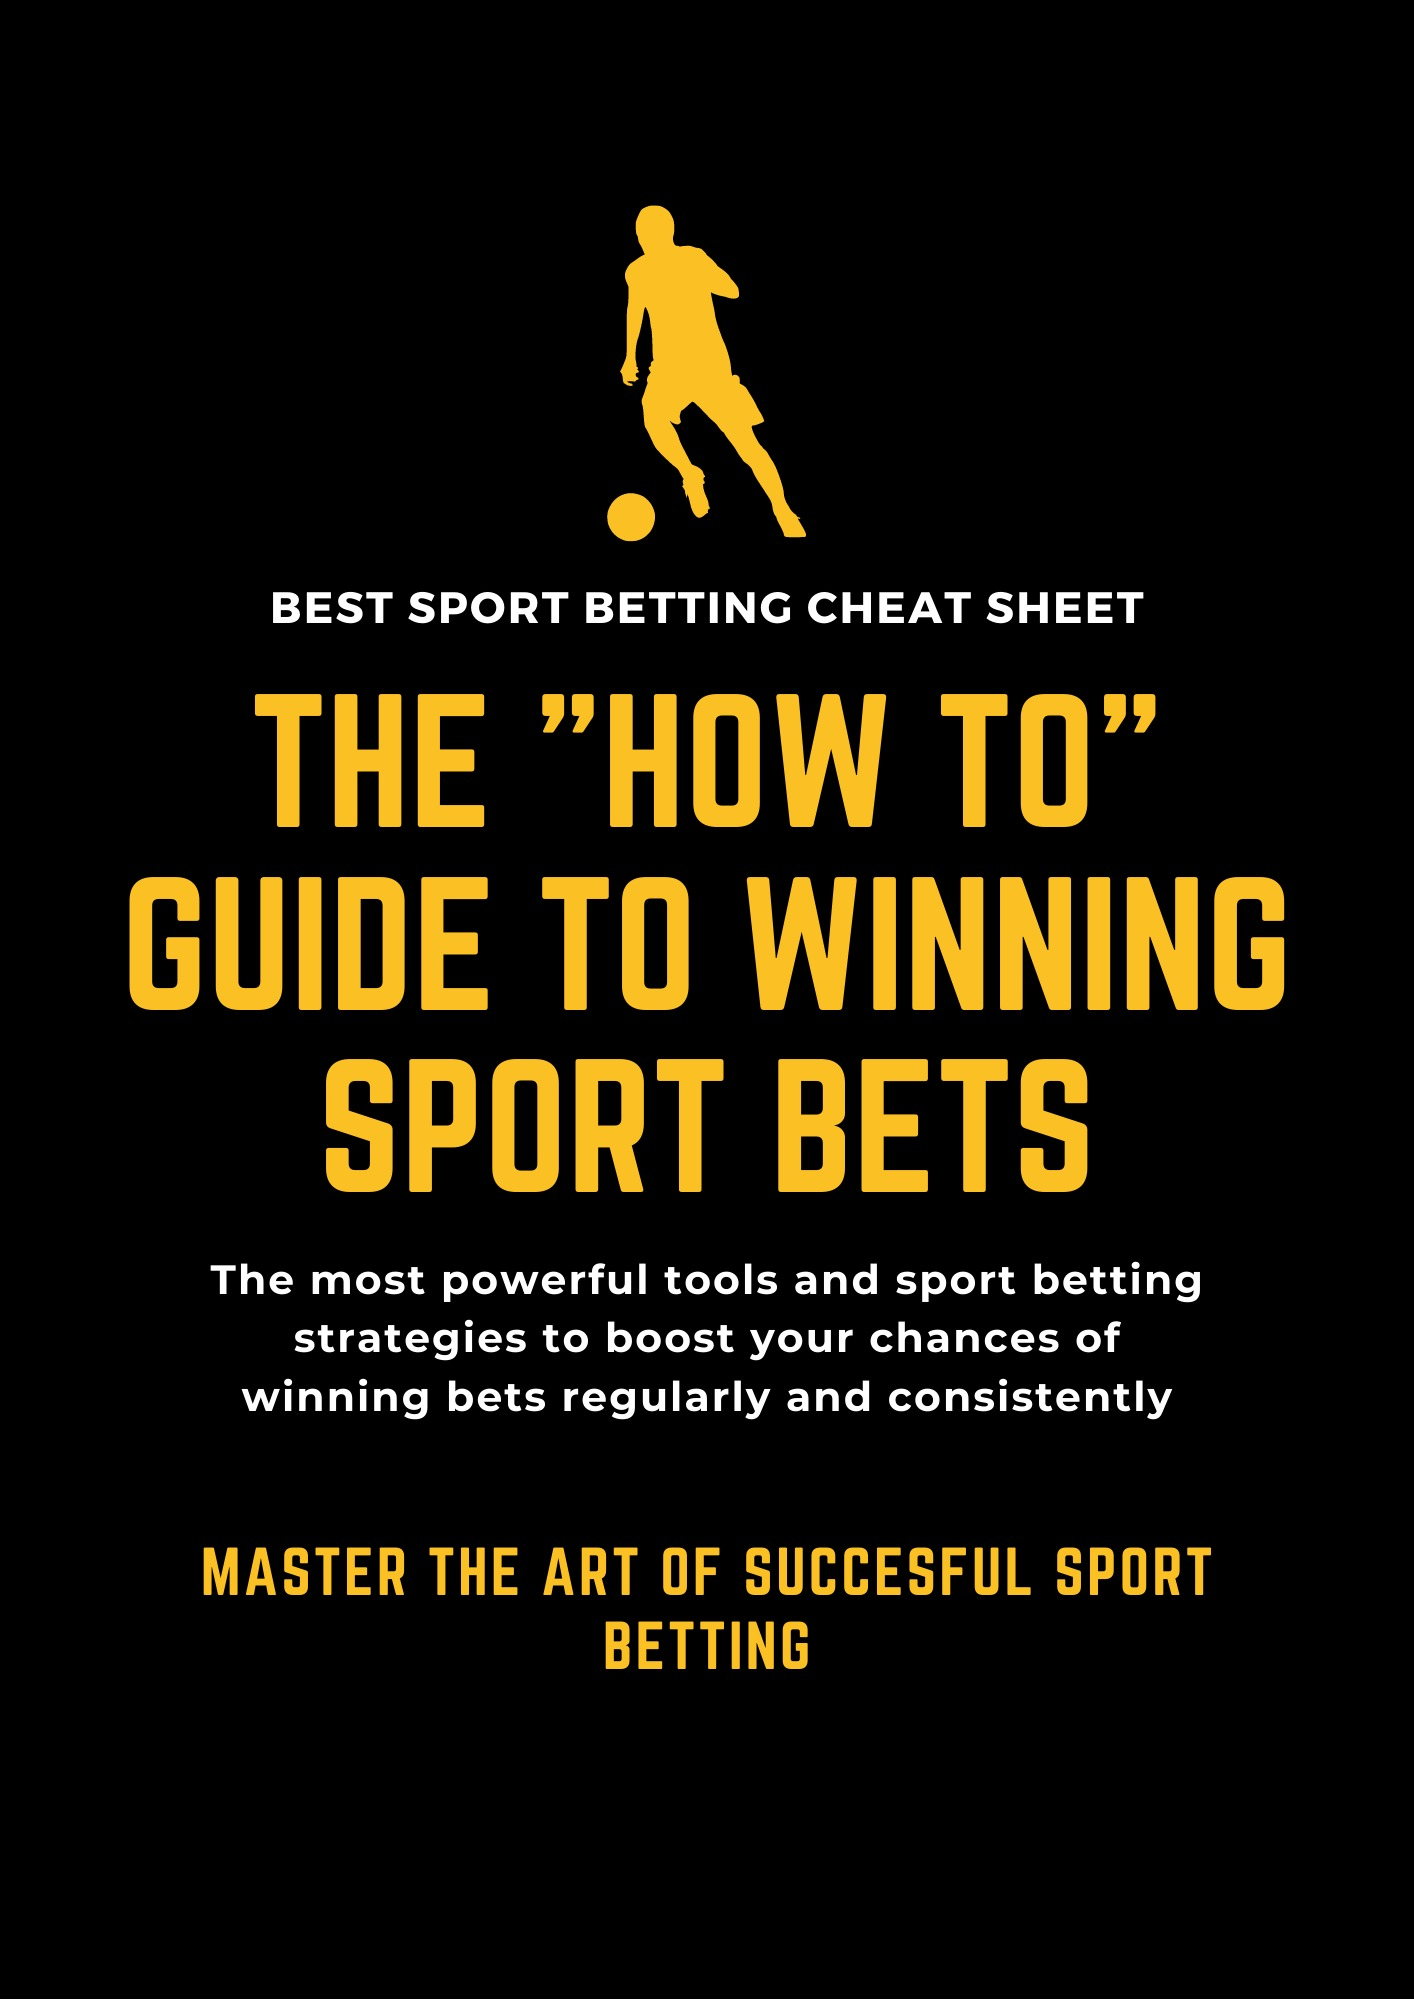 THE HOW TO GUIDE TO WINNING SPORT BETS